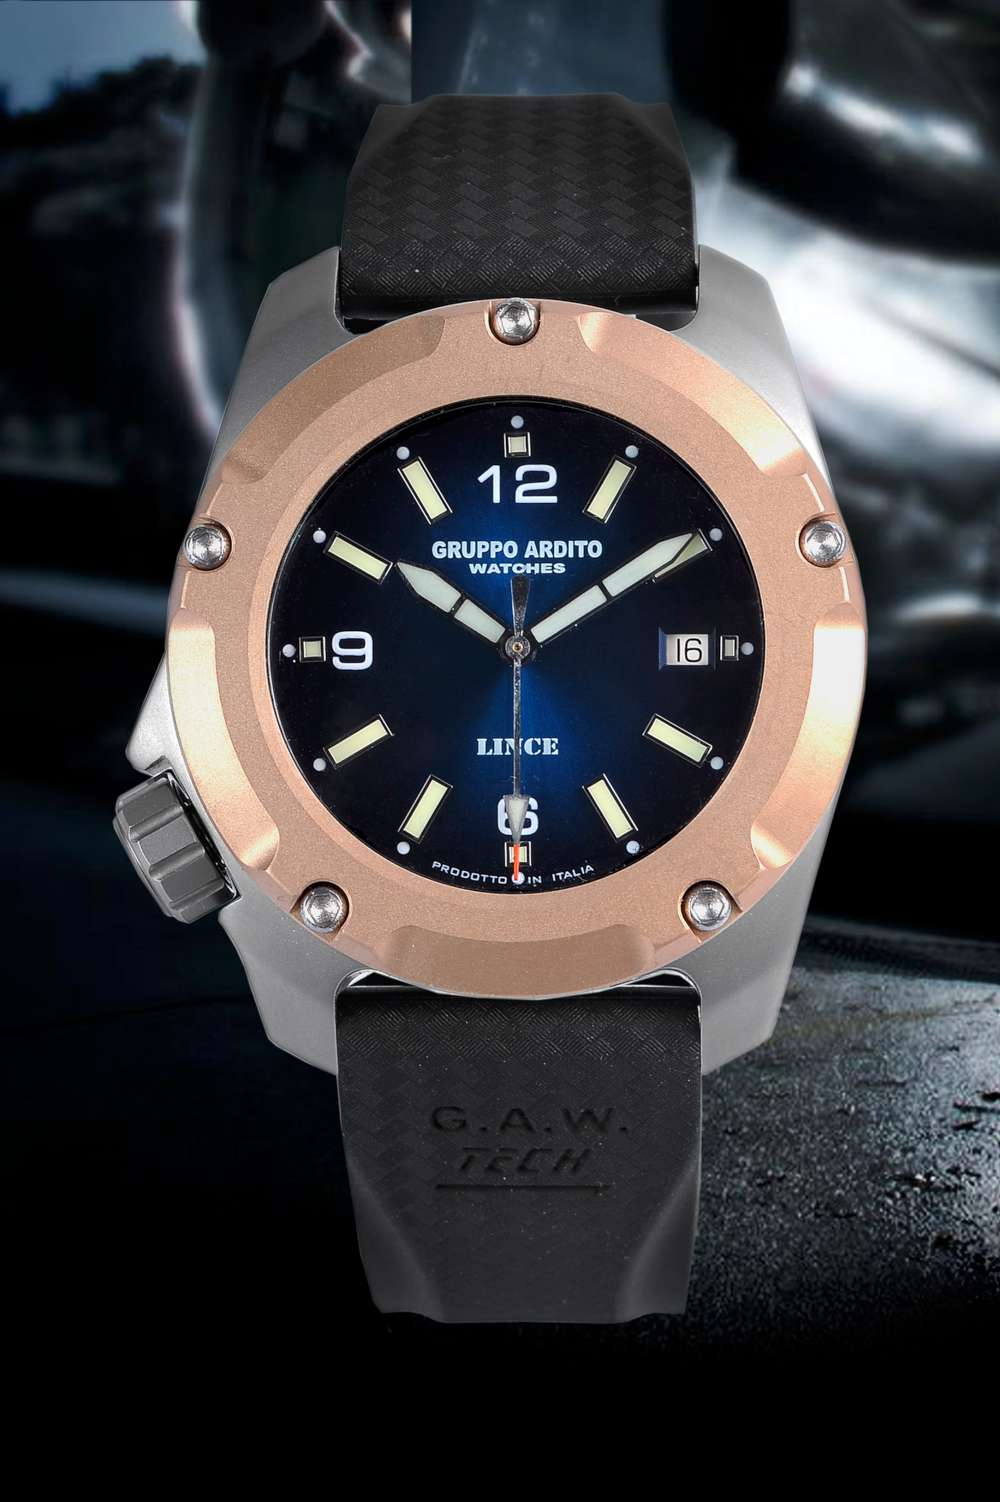 Gruppo Ardito Watches GAW Lince